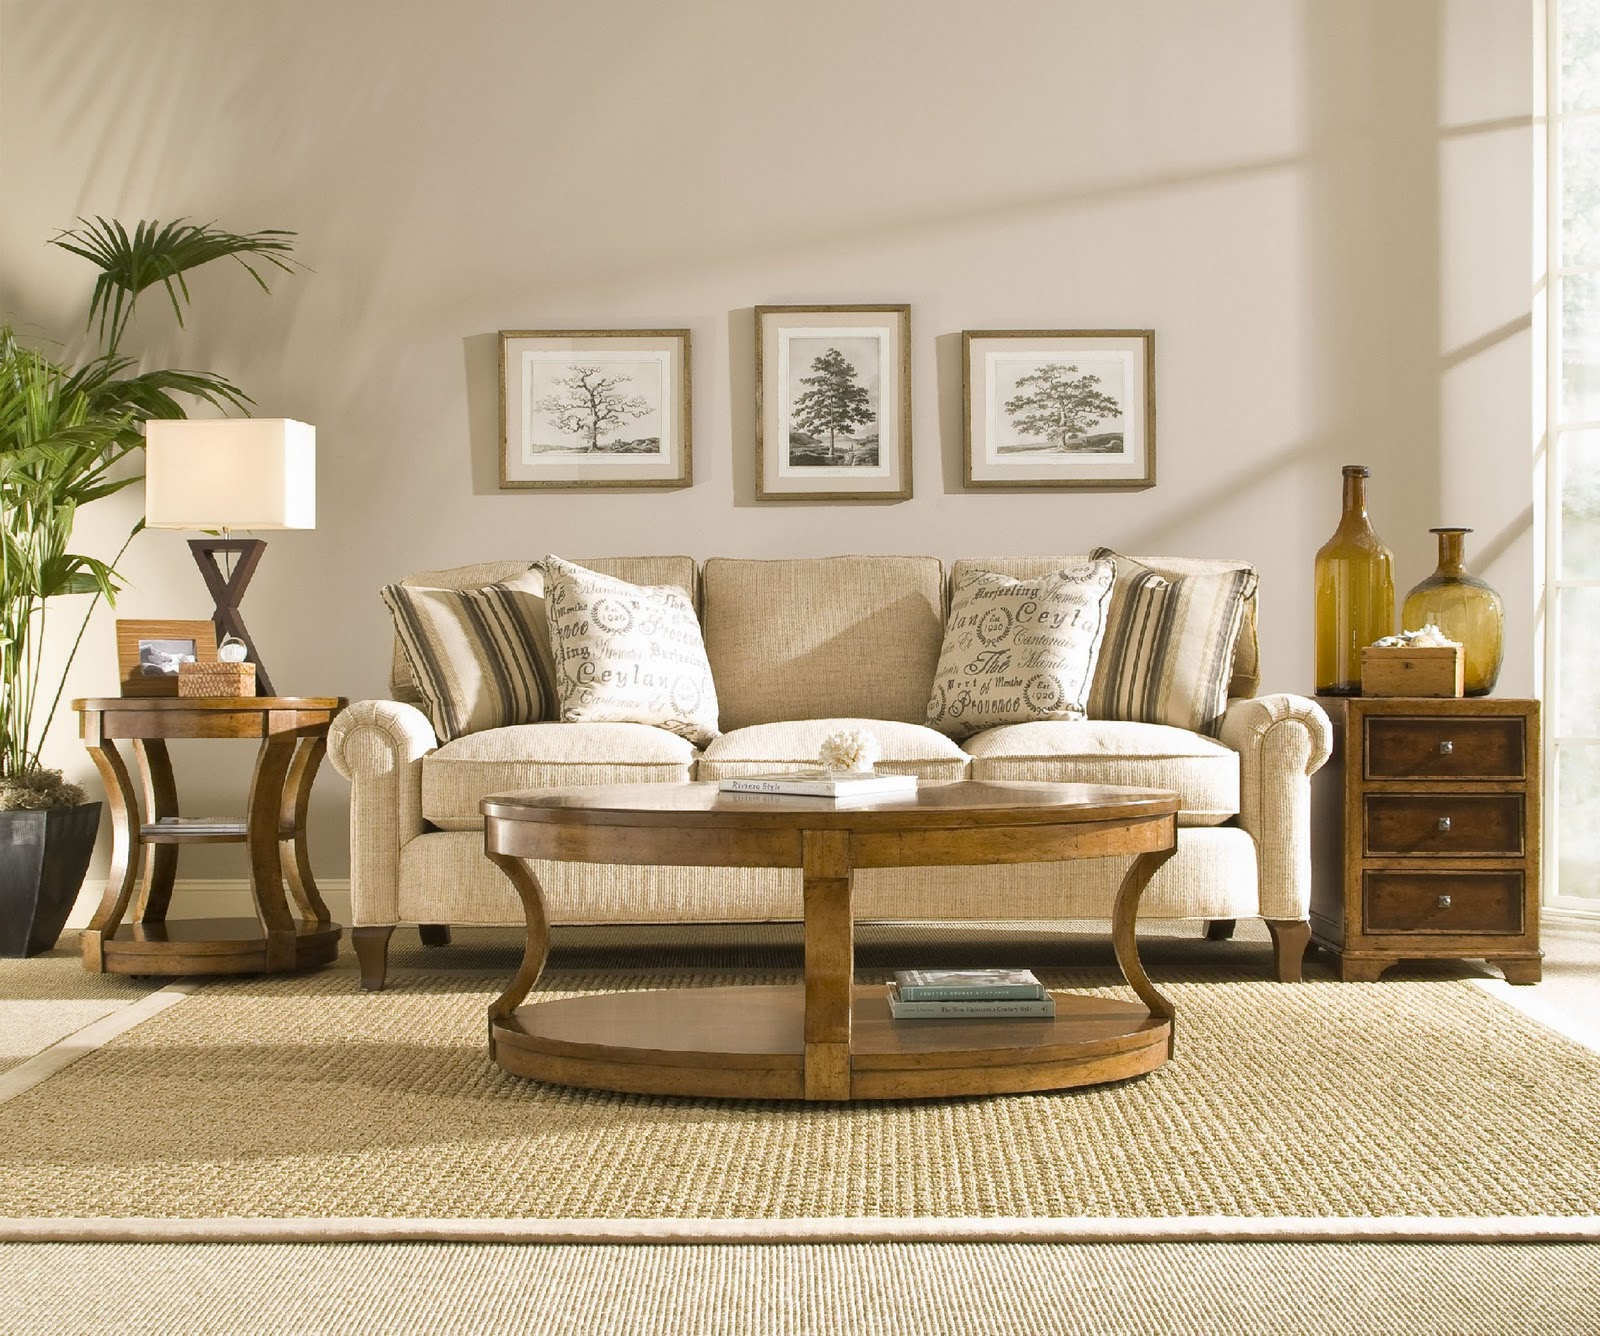 Gift & Home Today: Transitional Style Furniture For